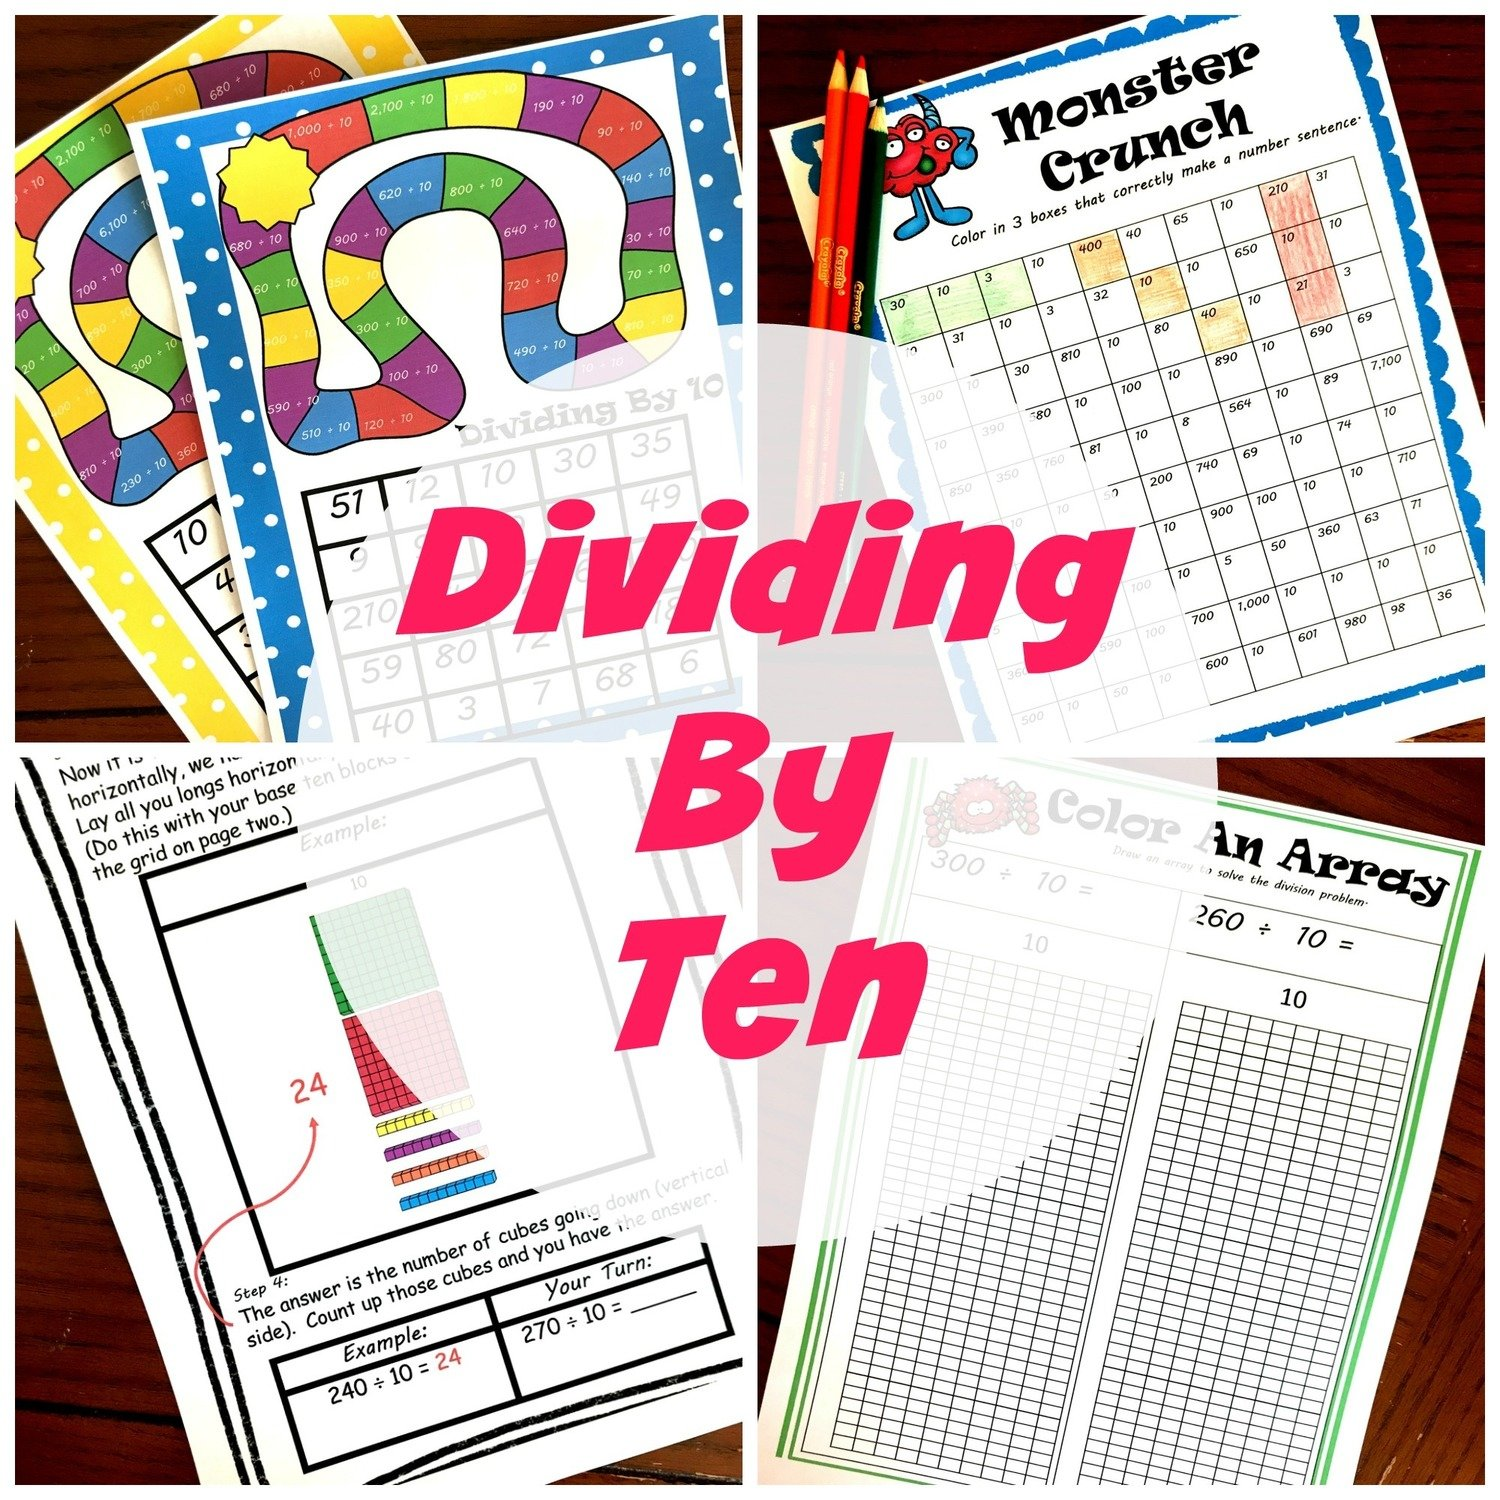 Dividing by 10